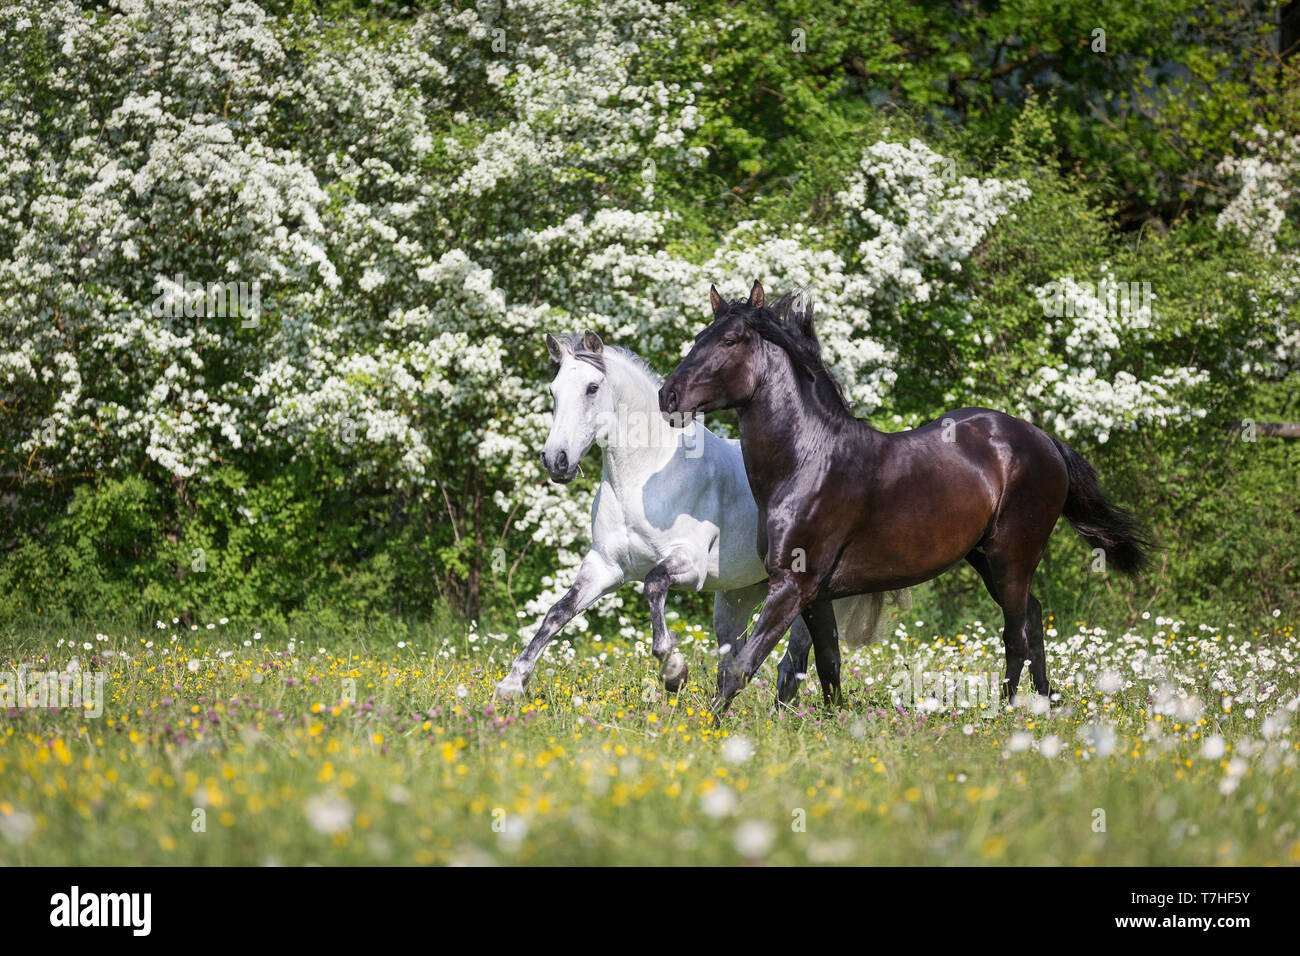 Pure Spanish Horse, Andalusian. Blind gelding and its friend a juvenile black stallion galloping on a flowering meadow. Switzerland - Stock Image